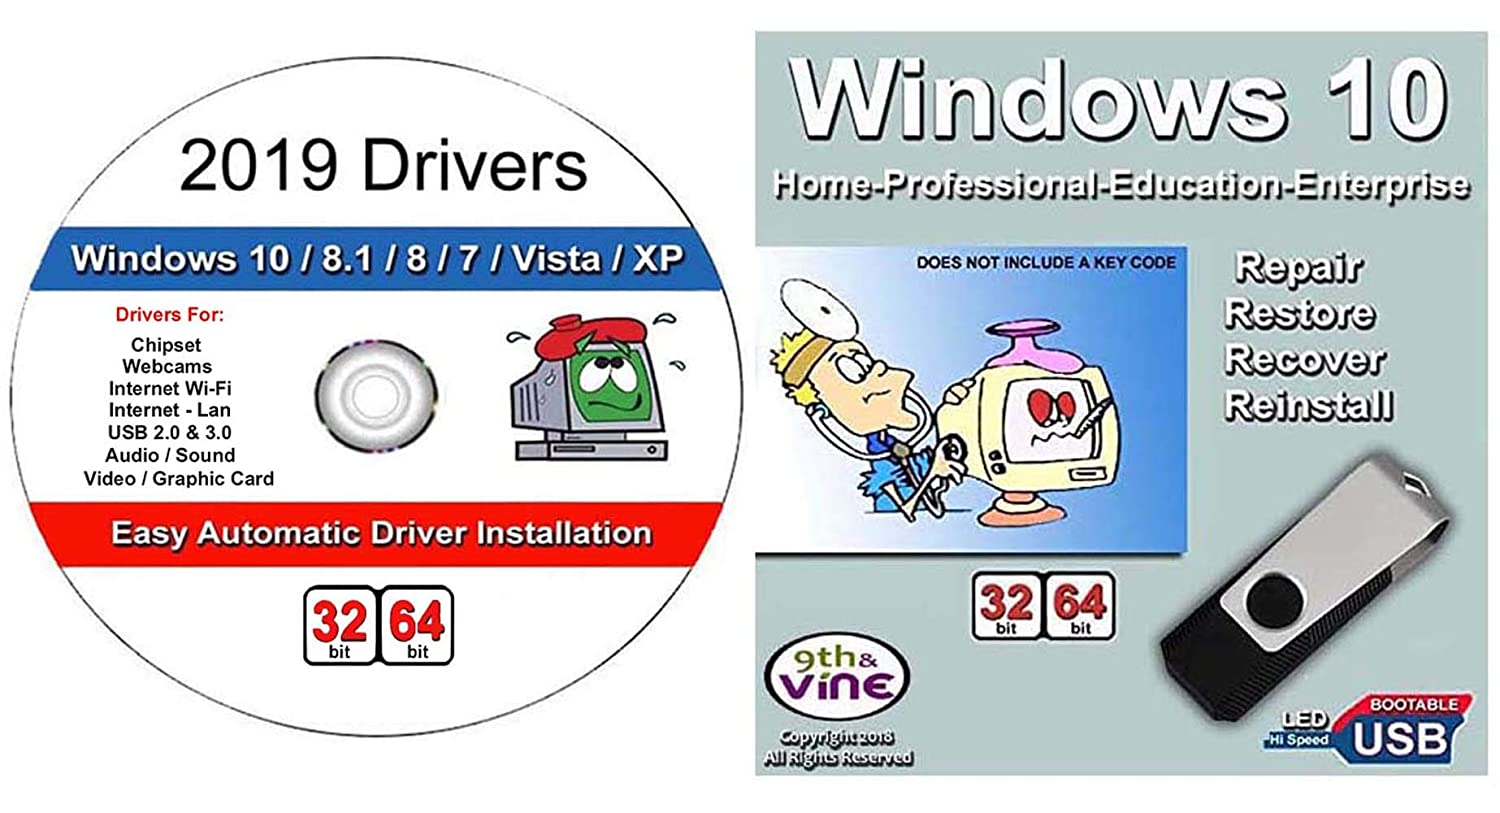 9th and Vine Compatible Windows 10 Home and Professional 32/64 Bit USB  Flash Drive and 2019 Drivers  Install To Factory Fresh, Recover, Repair and